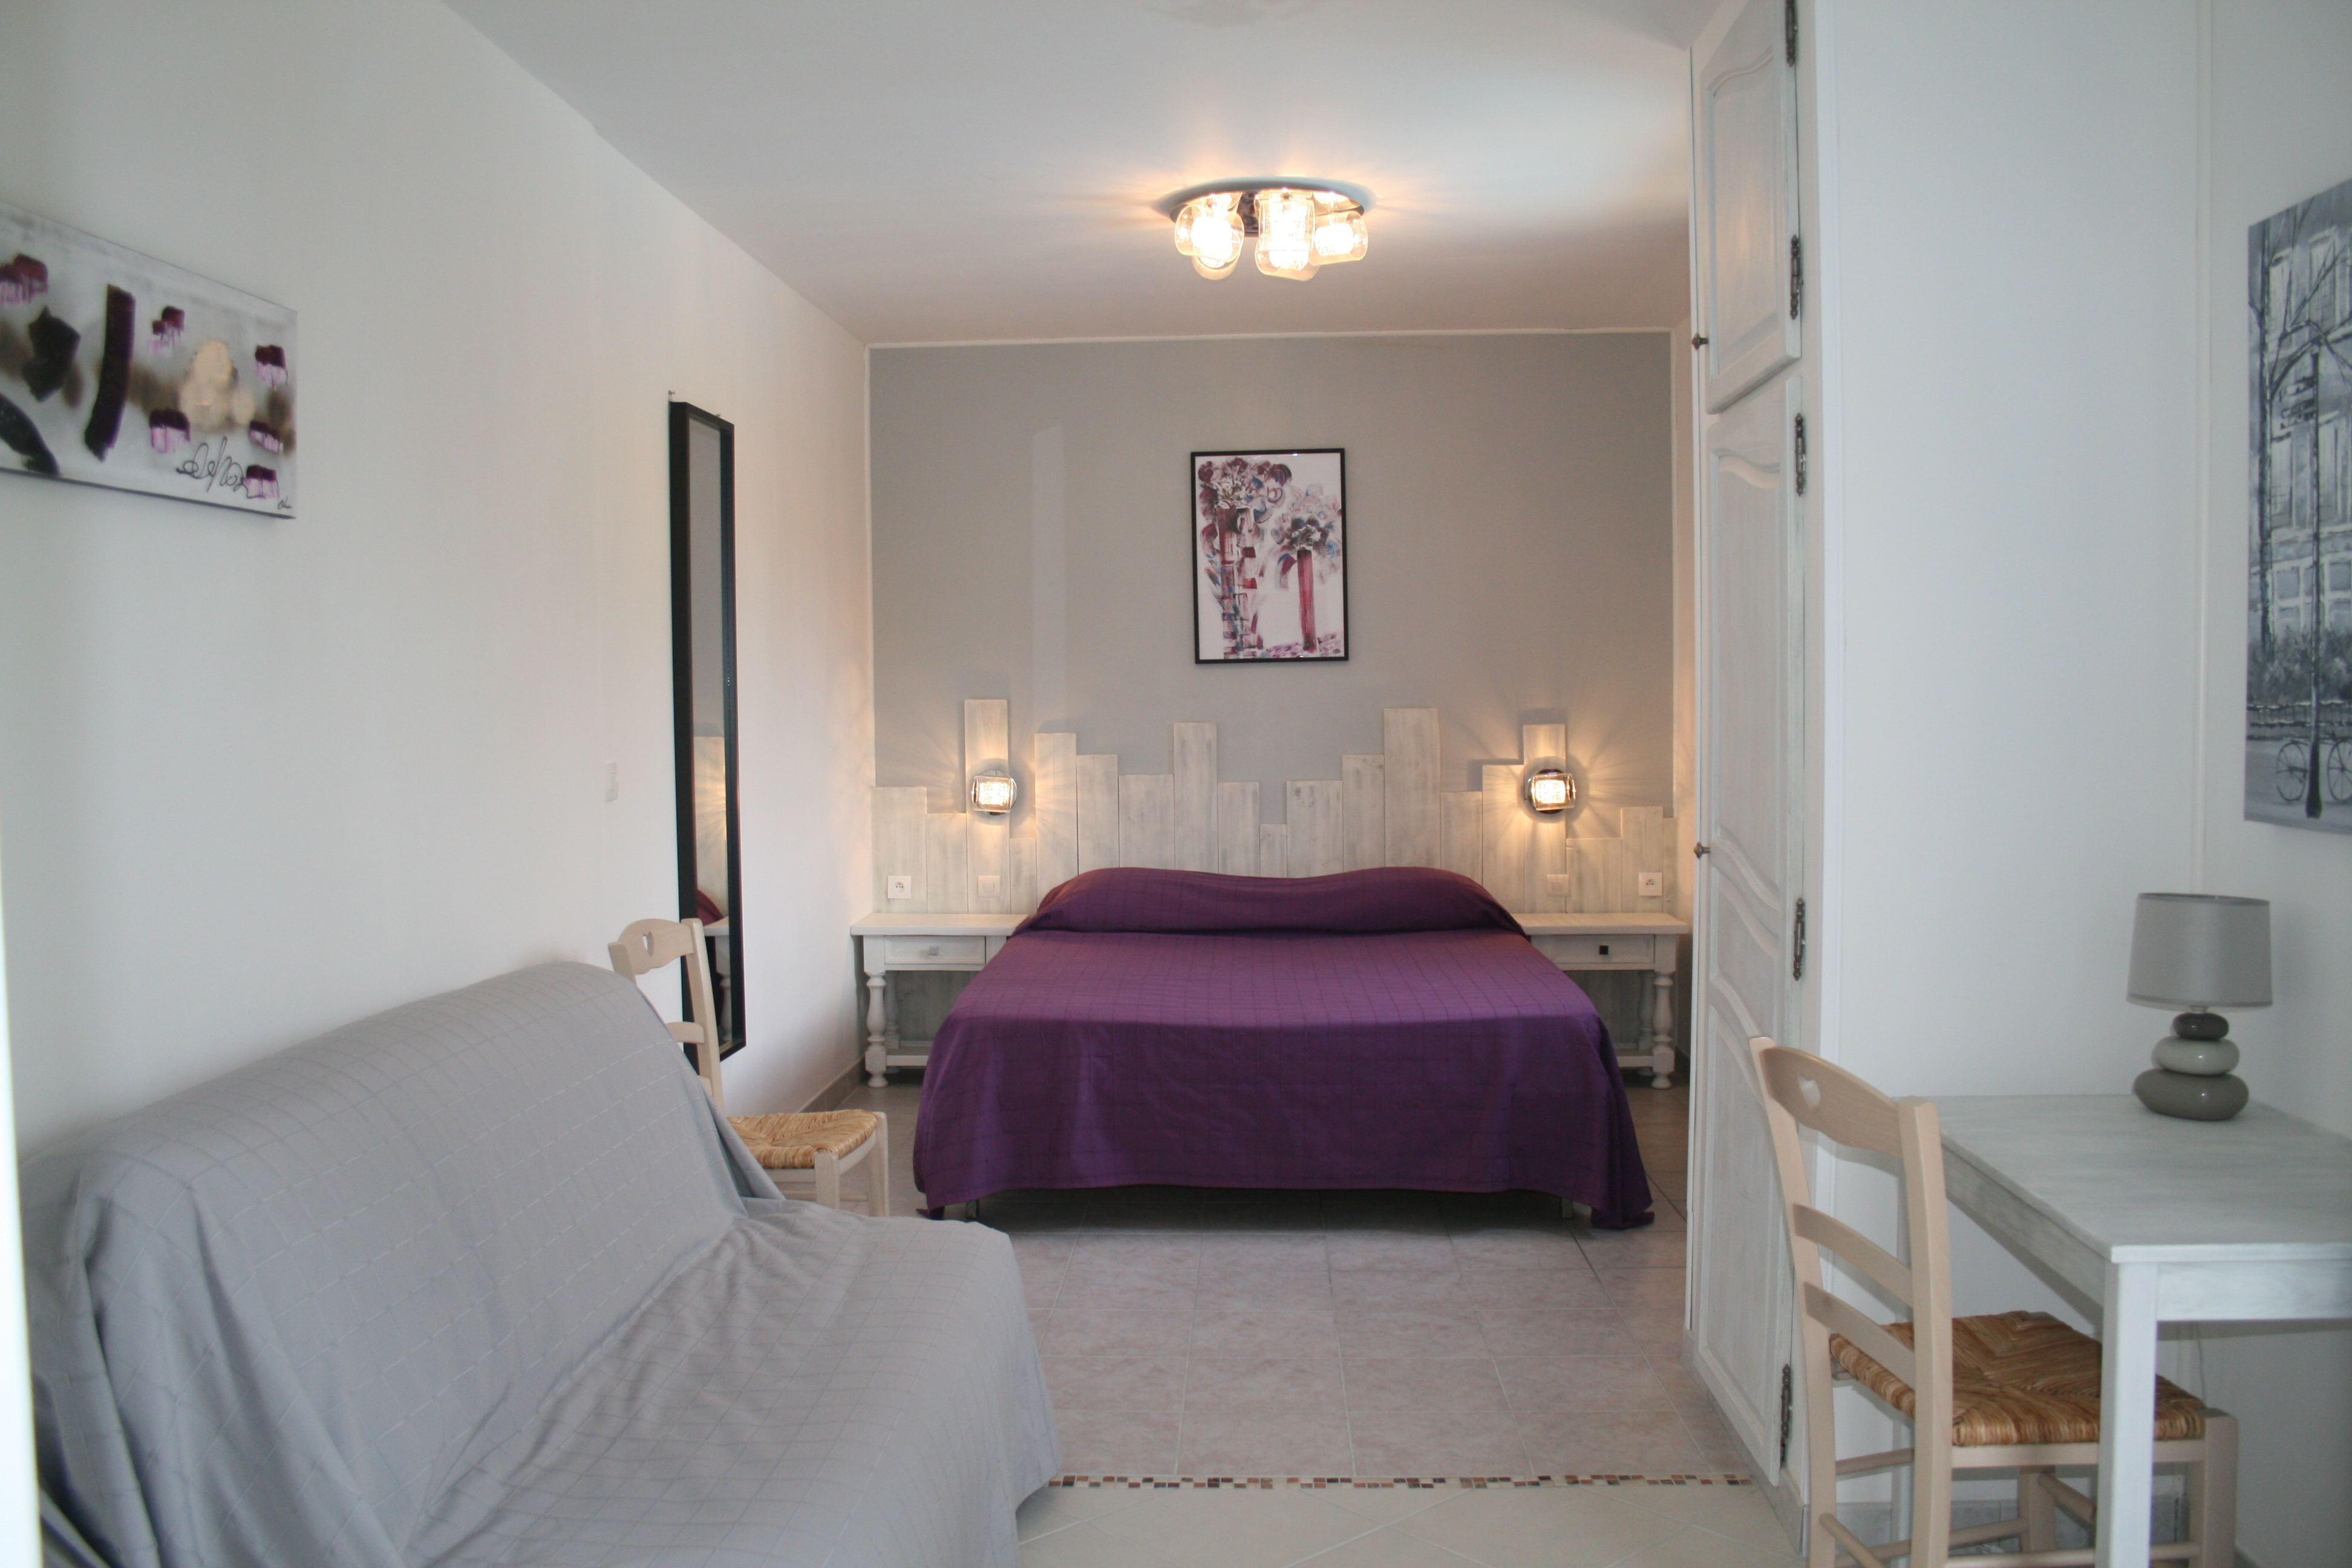 Chambres d 39 h tes louer h rault location meubl e saturargues roomlala - Chambres d hotes herault ...